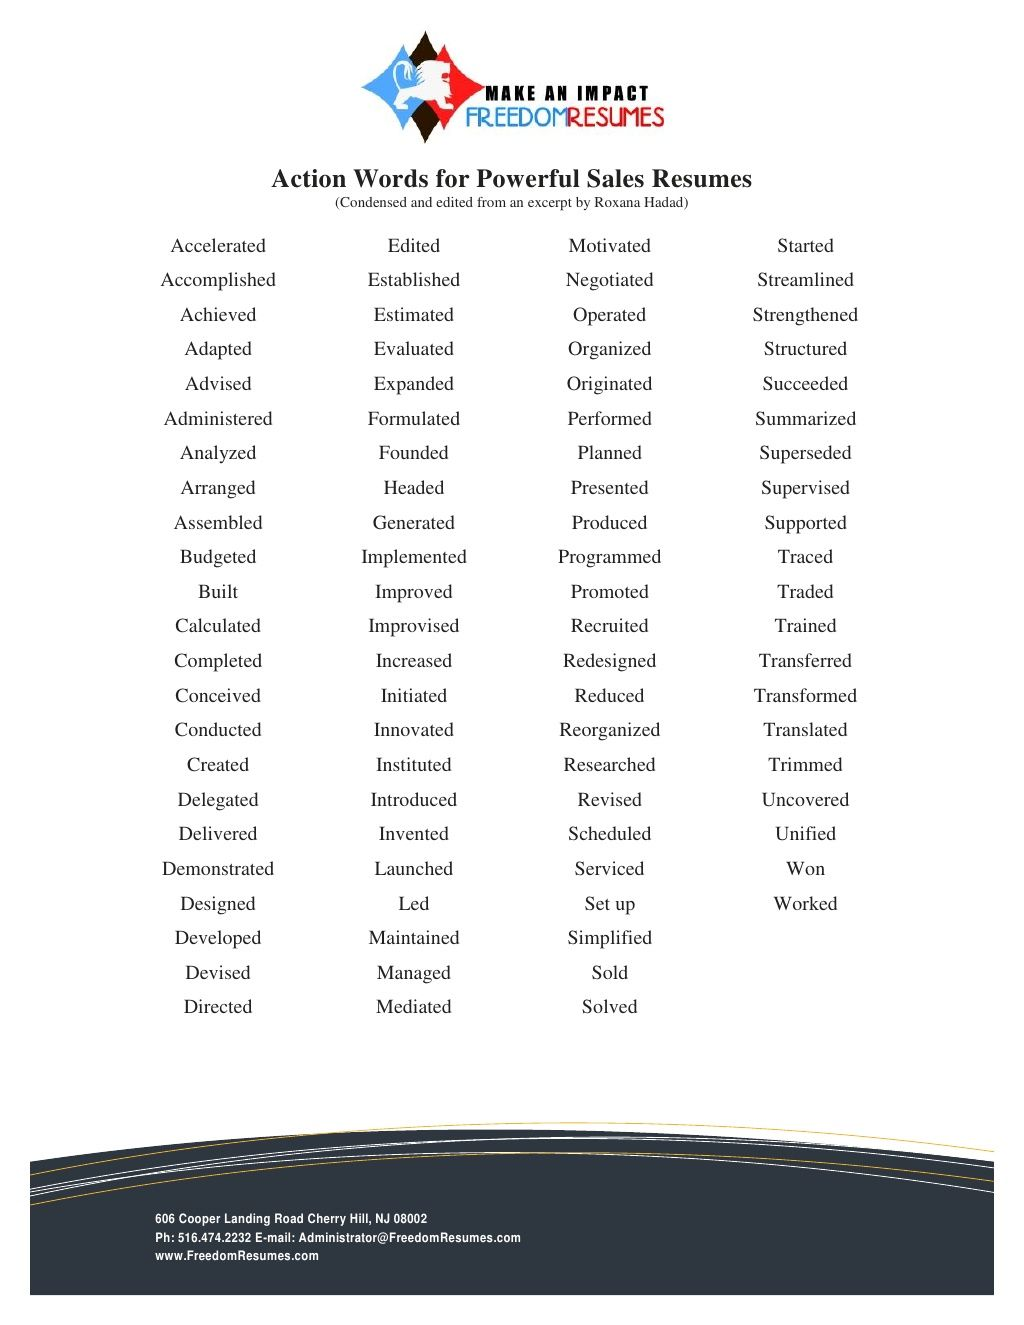 words for successful sales resumes by freedom